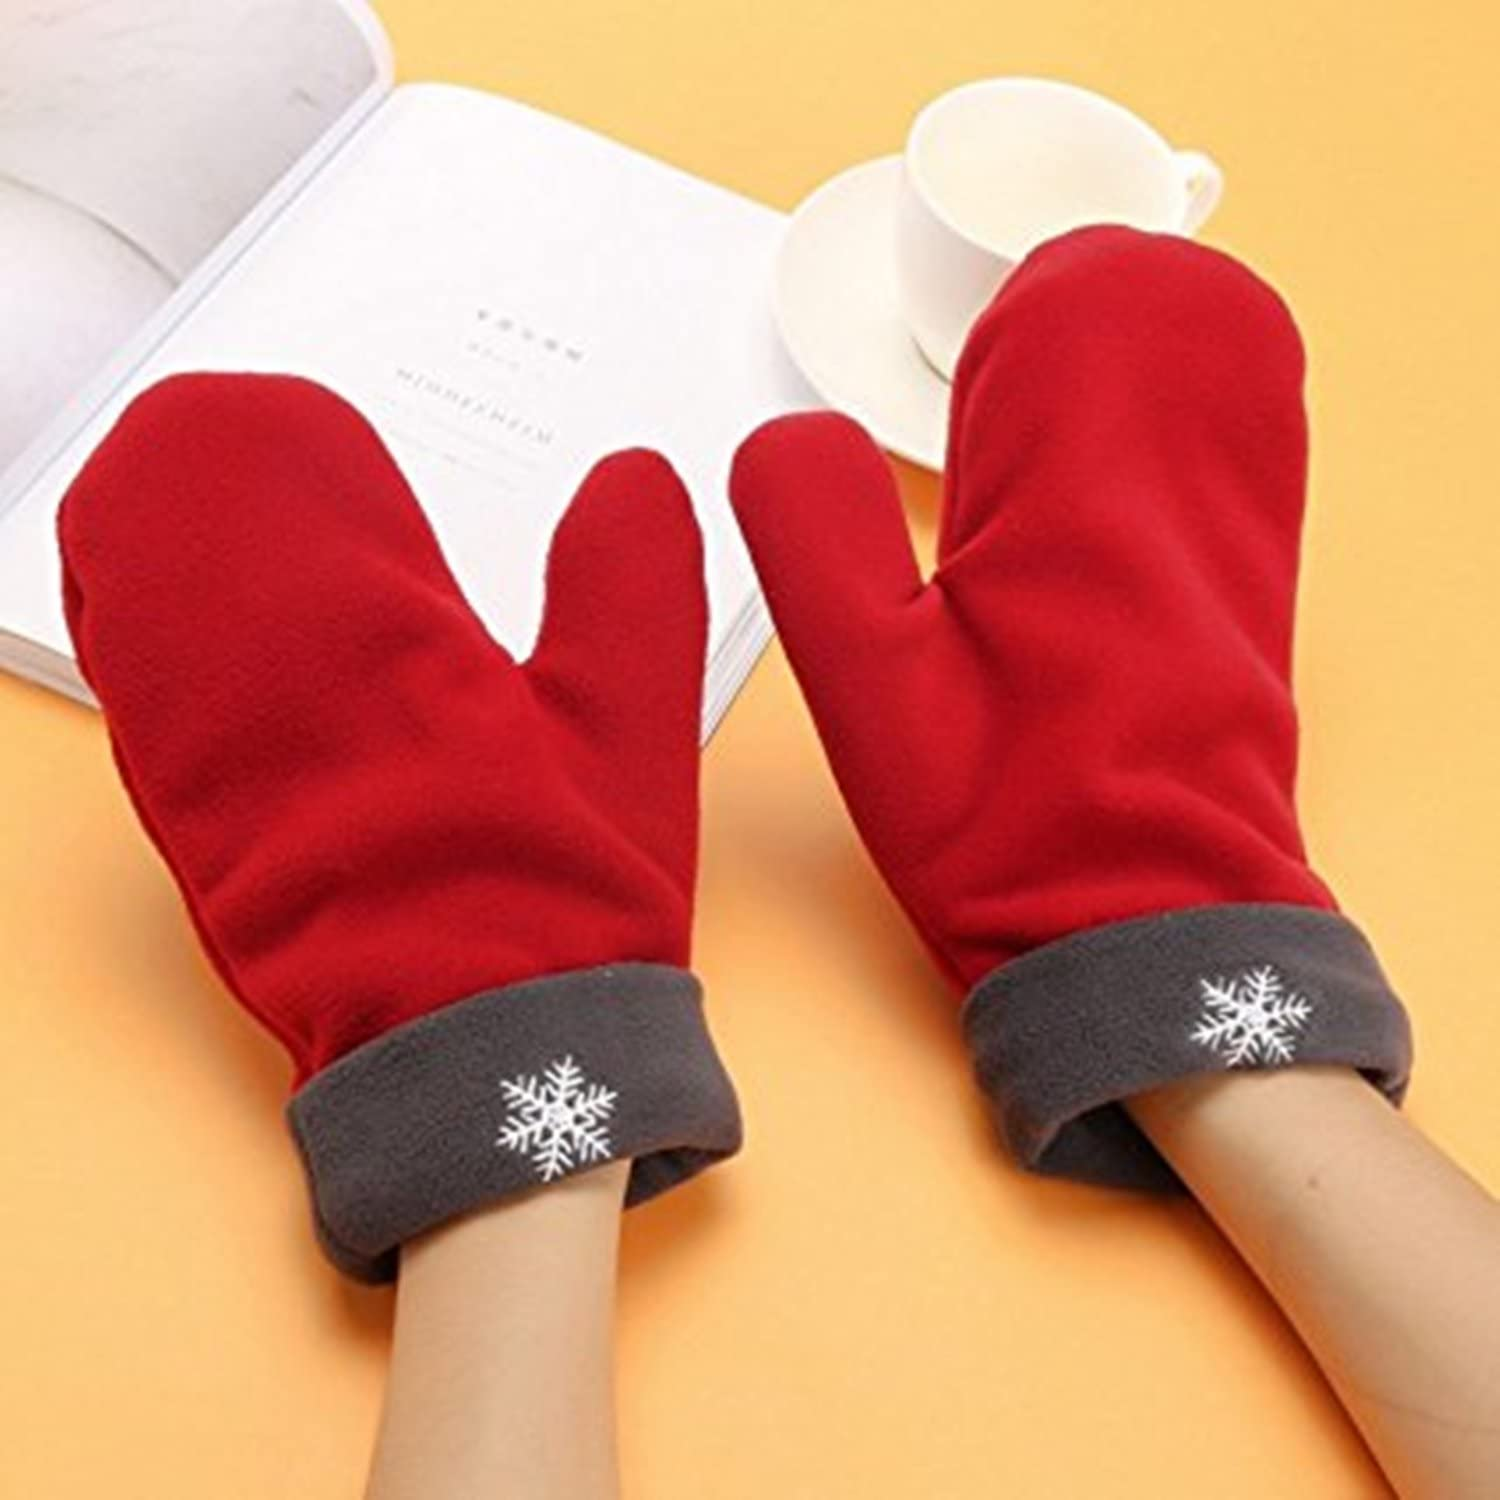 Mai Poetry Christmas Lovers Couples Snowflake Winter Mittens Gloves Valentines Gift